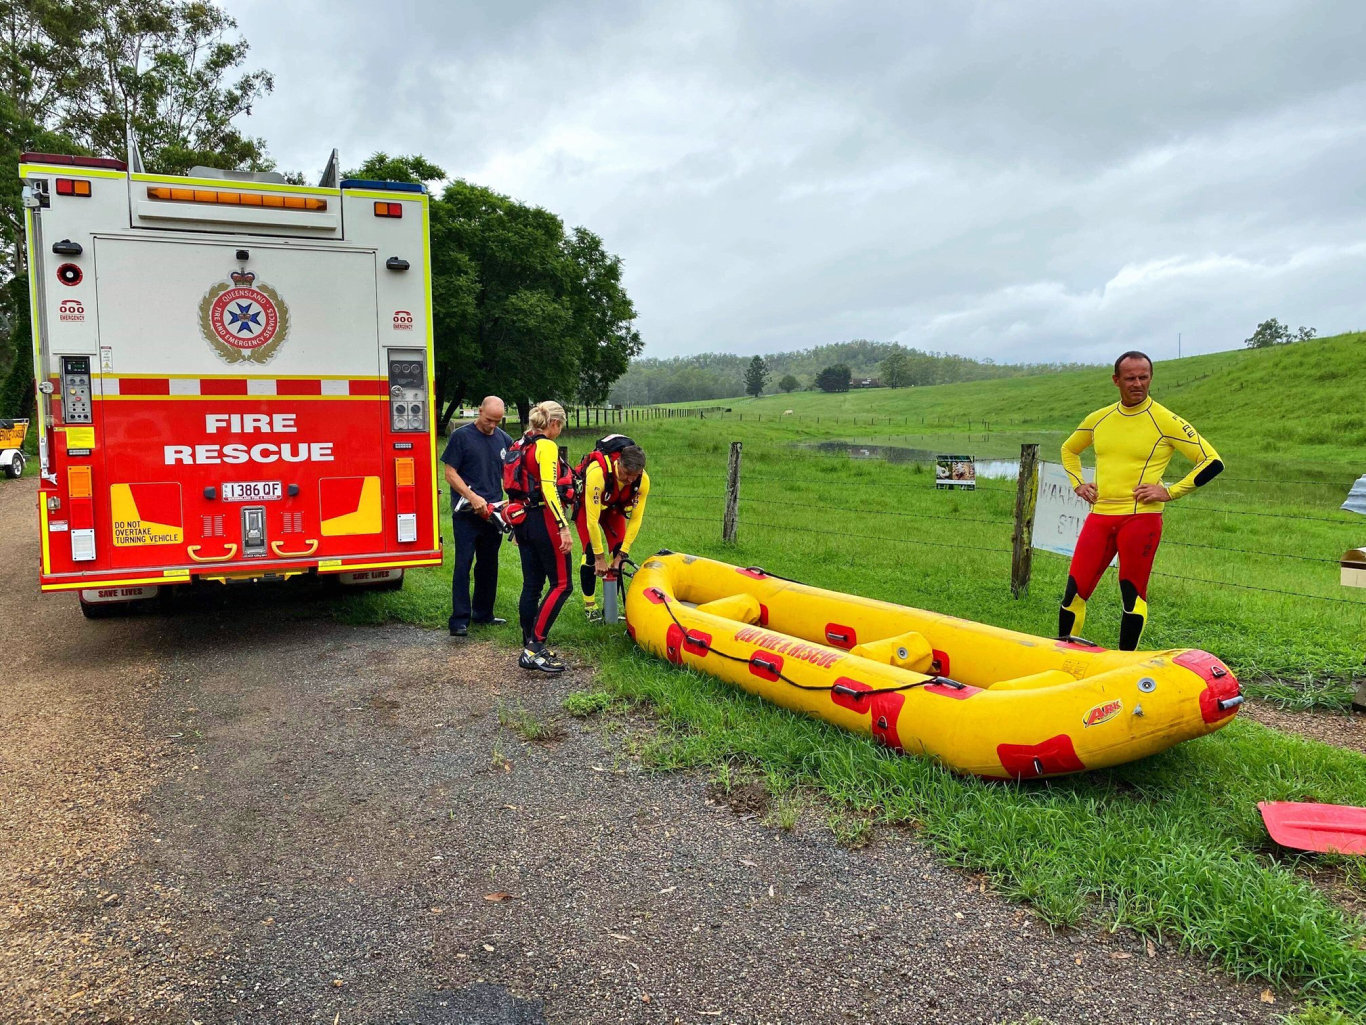 The man is believed to have gone kayaking on Sunday and hasn't been seen since. Photo: ABC